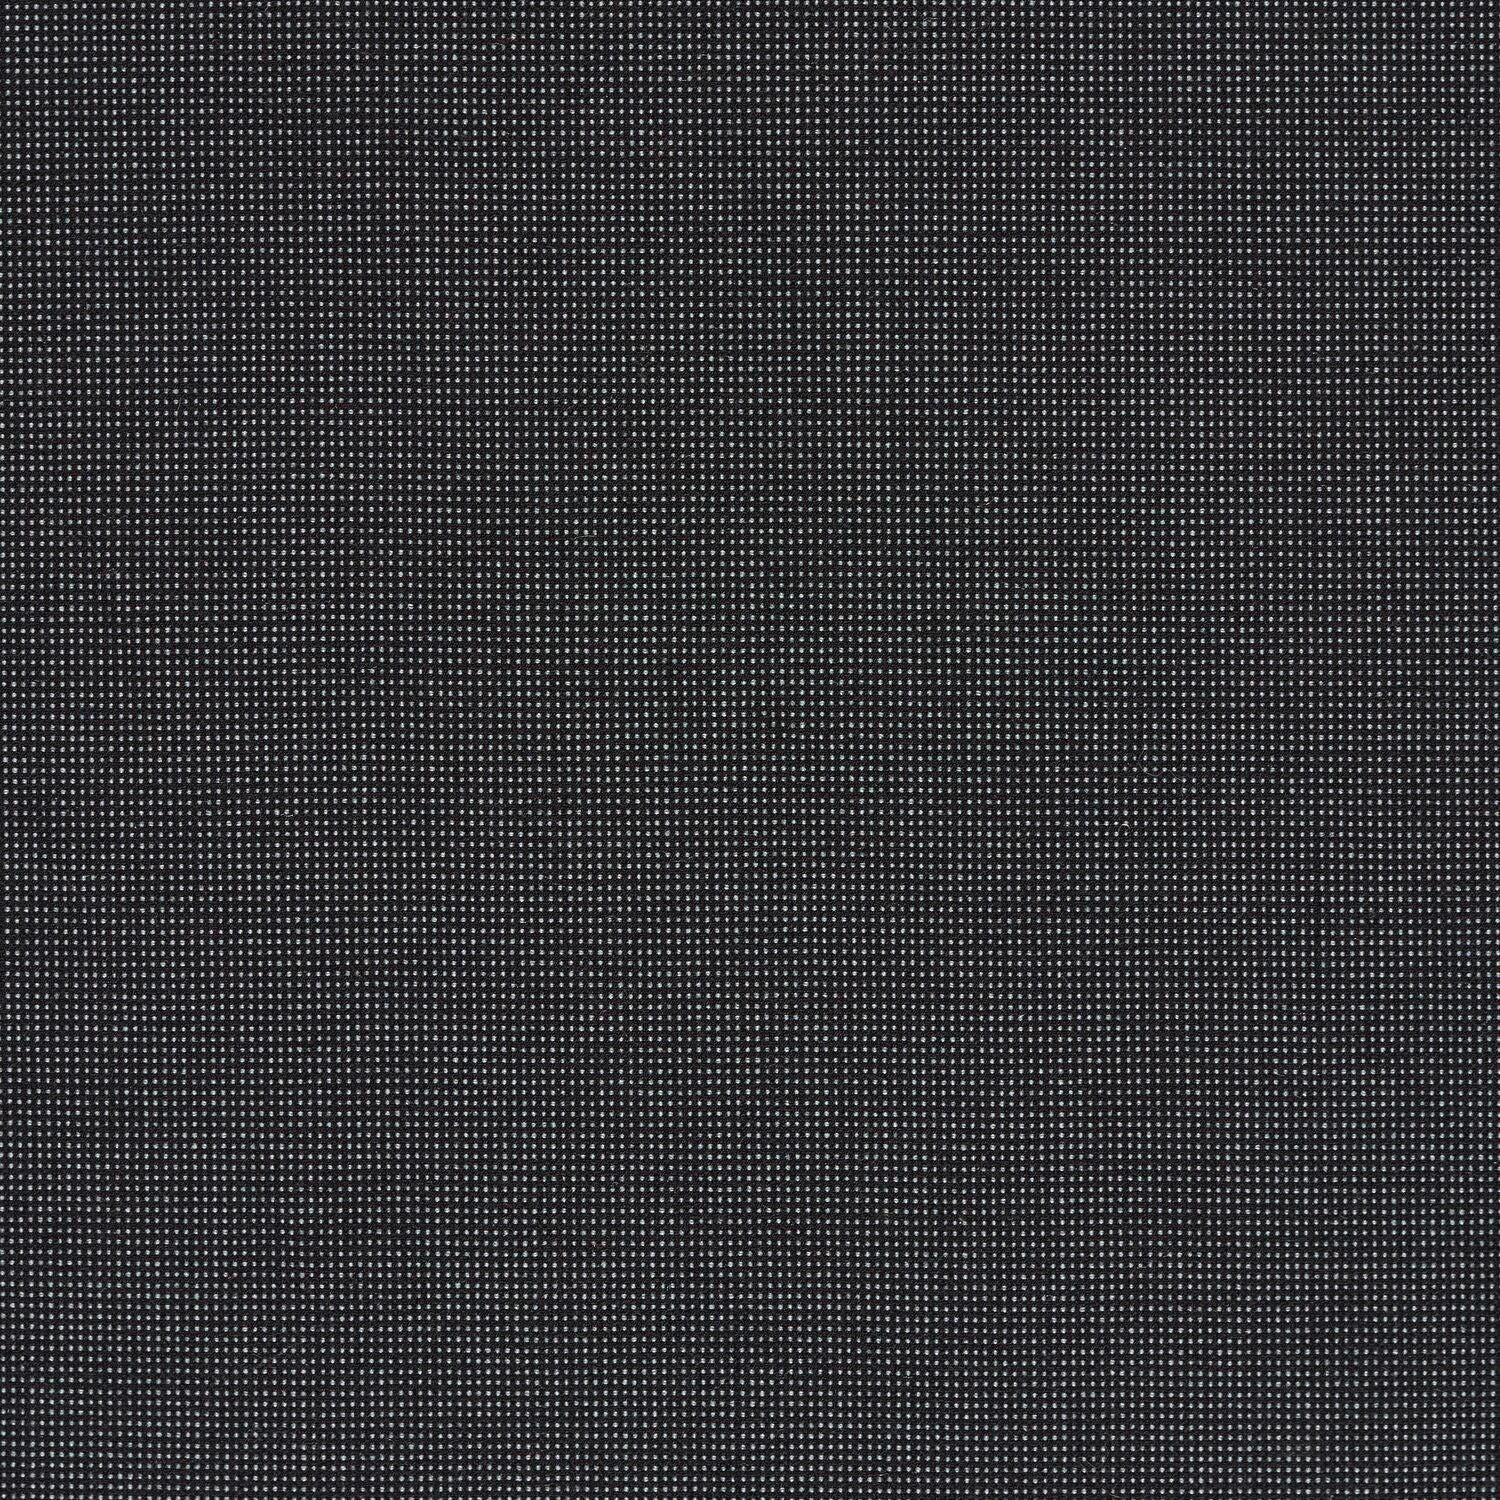 Elastic Wool - Fortress - 4067 - 01